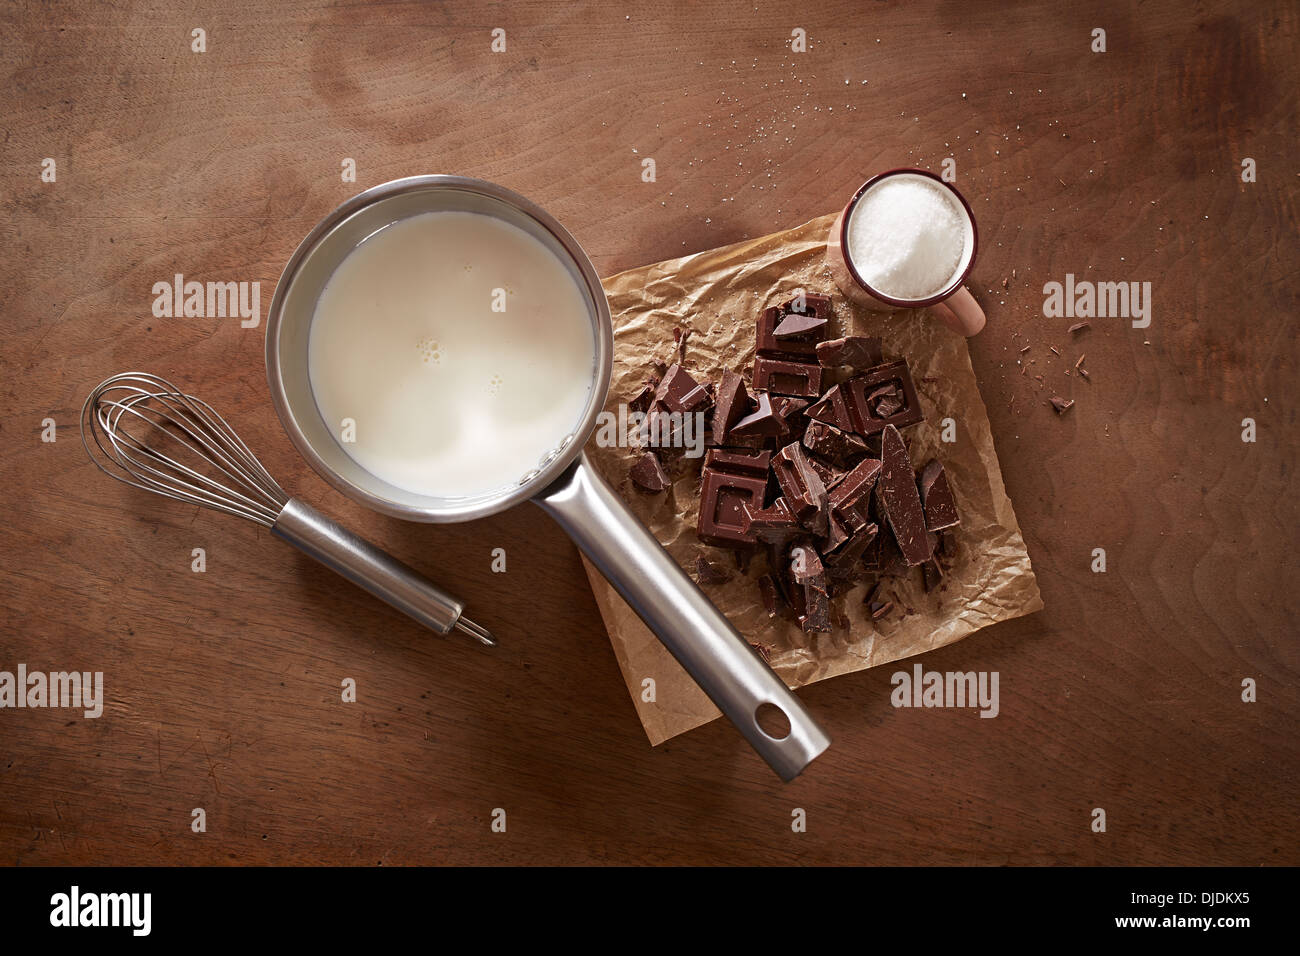 Hot chocolate with milk ingredients on wooden table overlook shot - Stock Image